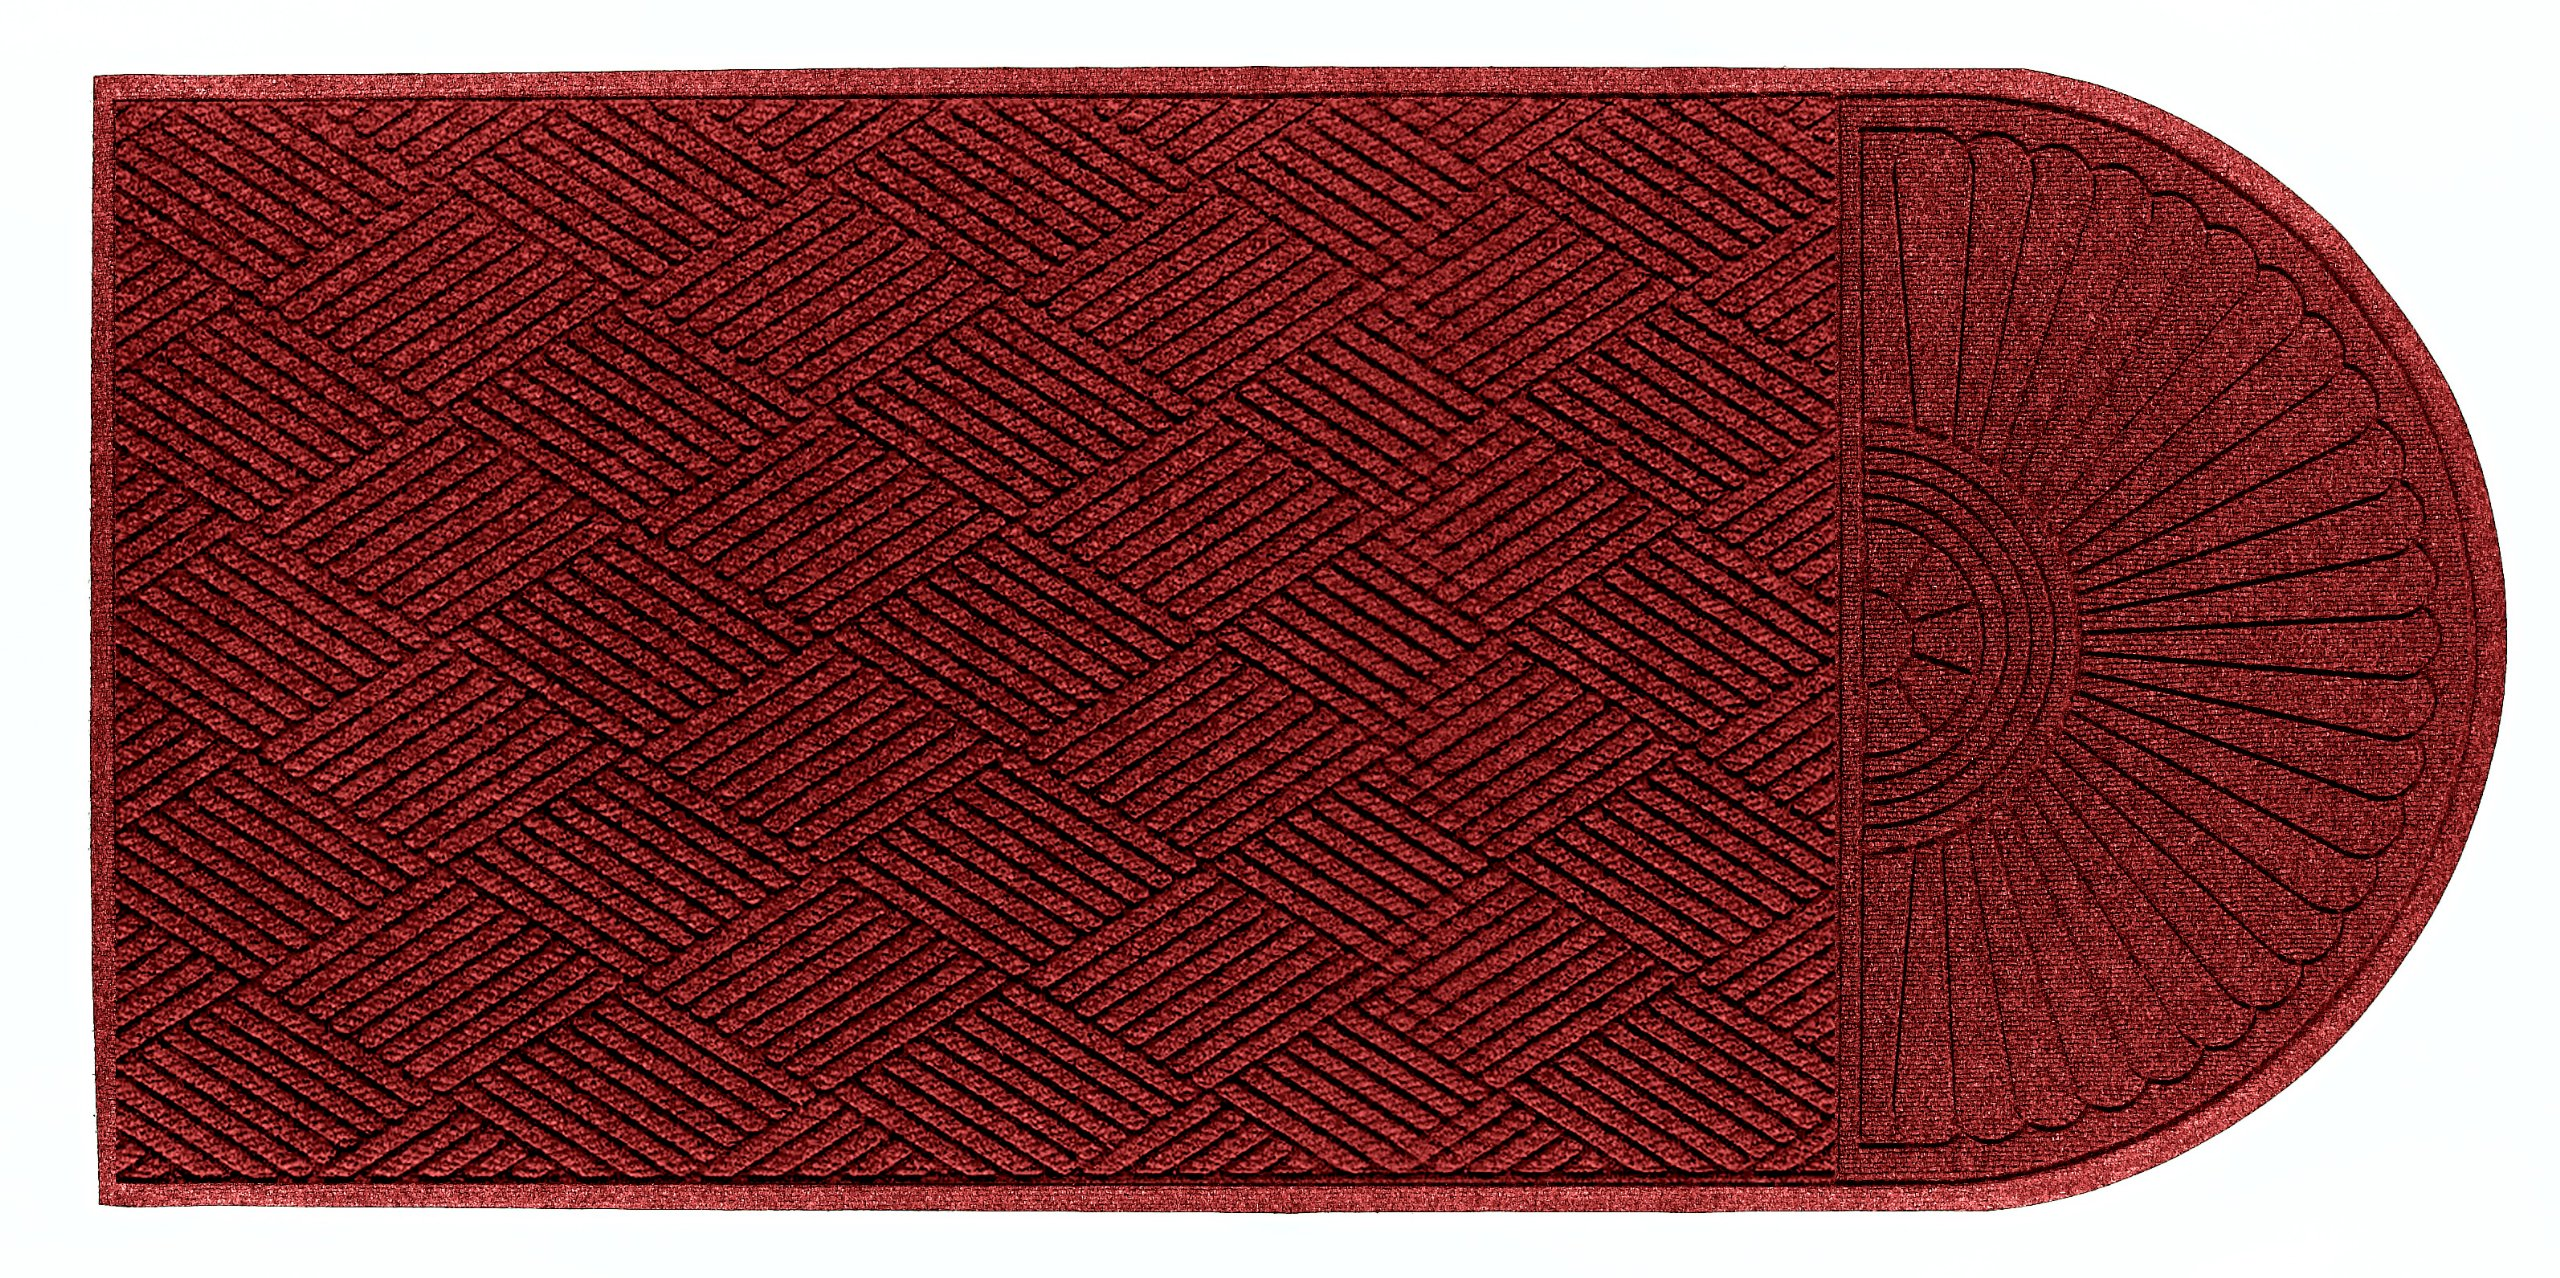 Andersen 273 Waterhog Grand Classic Polypropylene Fiber Single End Entrance Indoor/Outdoor Floor Mat, SBR Rubber Backing, 10' Length x 3' Width, 3/8'' Thick, Red/Black